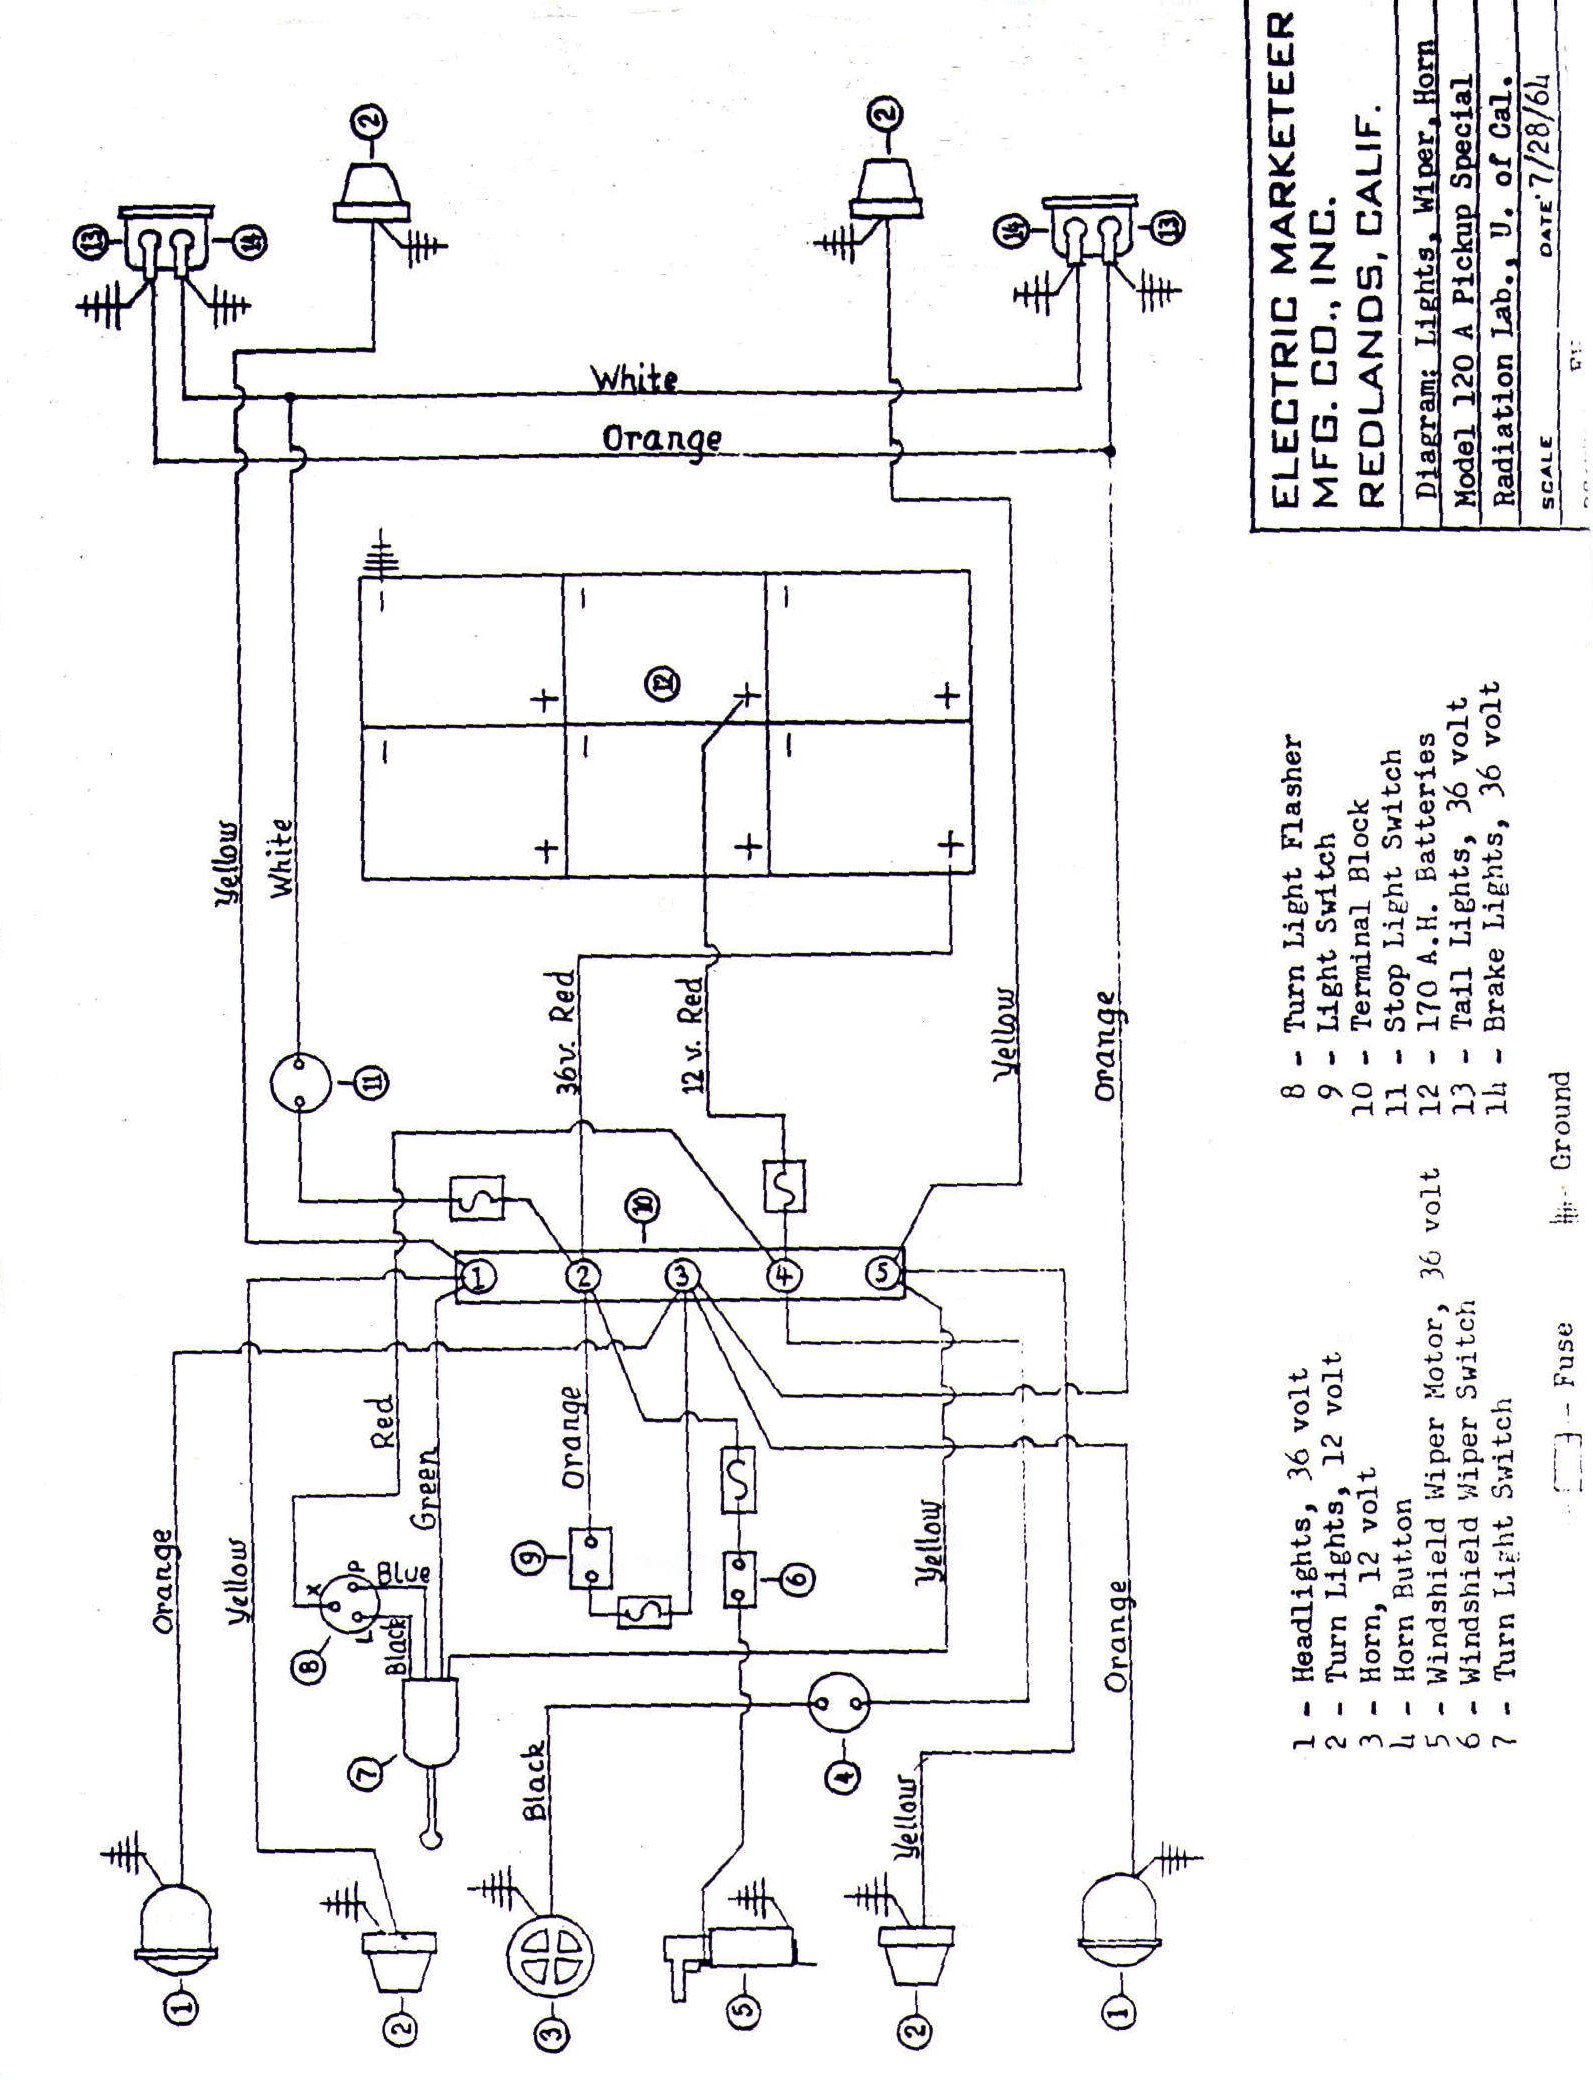 westinghouse golf cart wiring diagram   37 wiring diagram